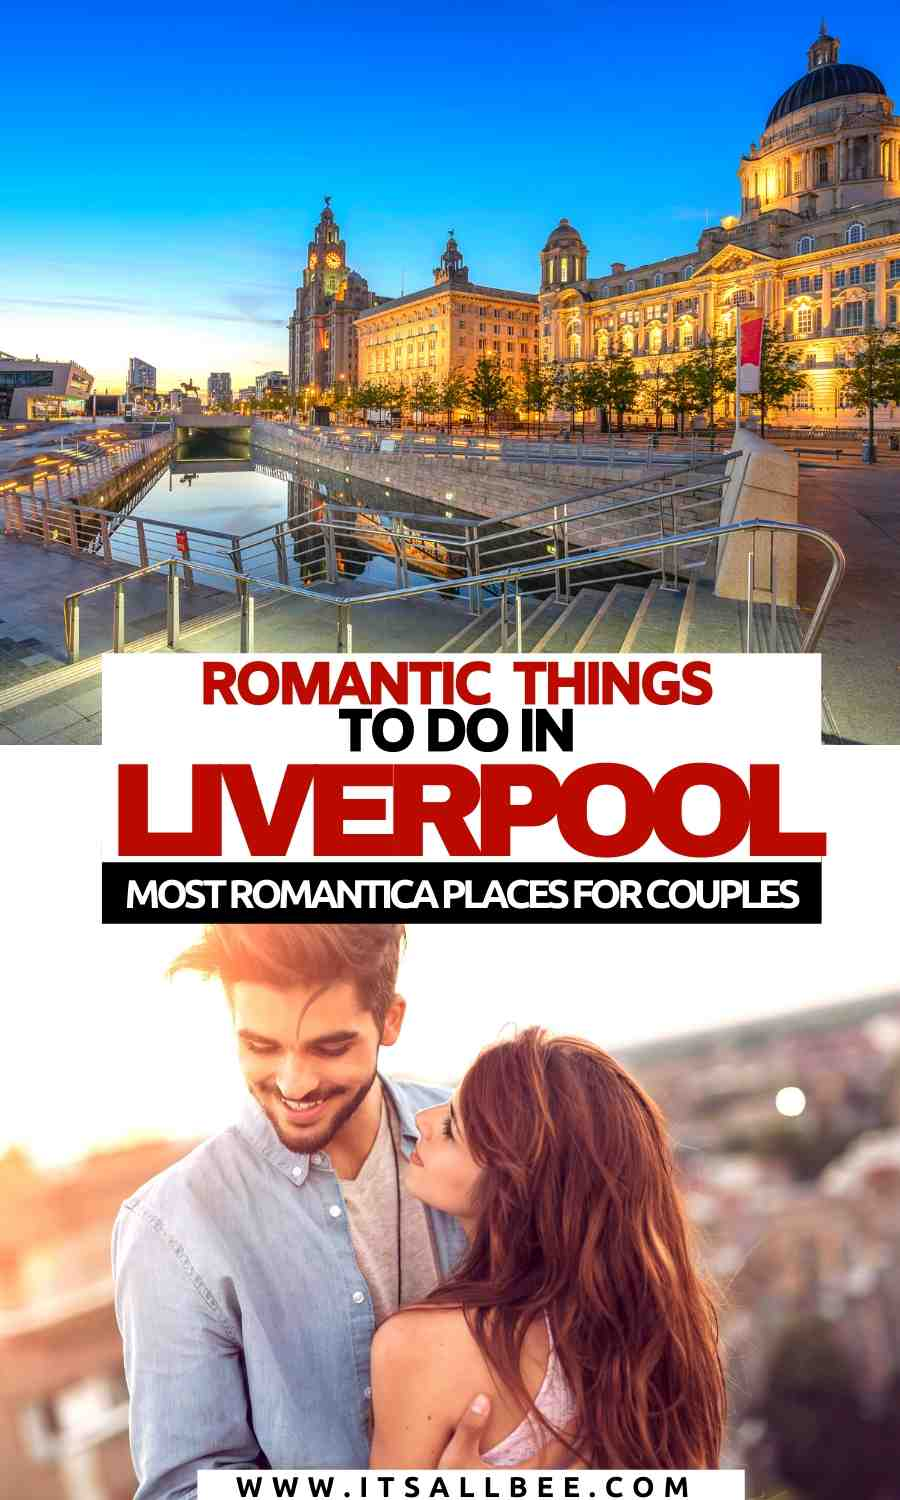 Romantic things to do for couples in Liverpool